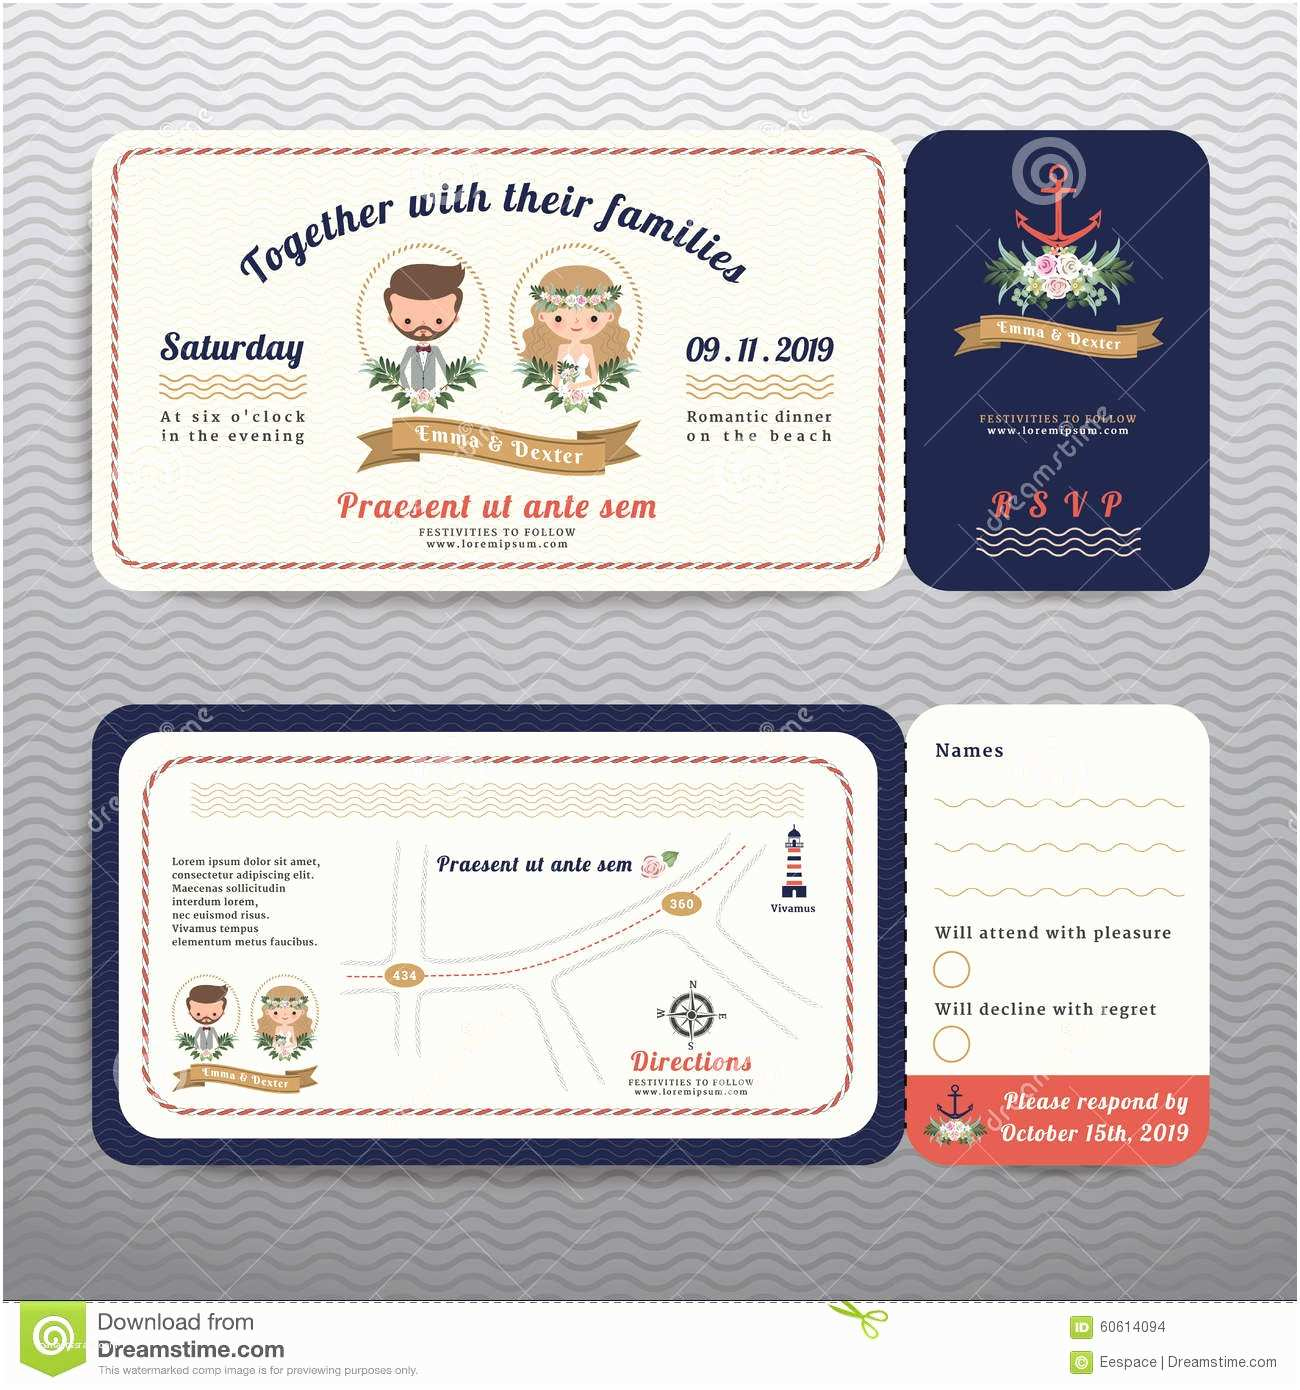 Hipster Wedding Invitations Nautical Ticket Hipster Bride and Groom Wedding Invitation